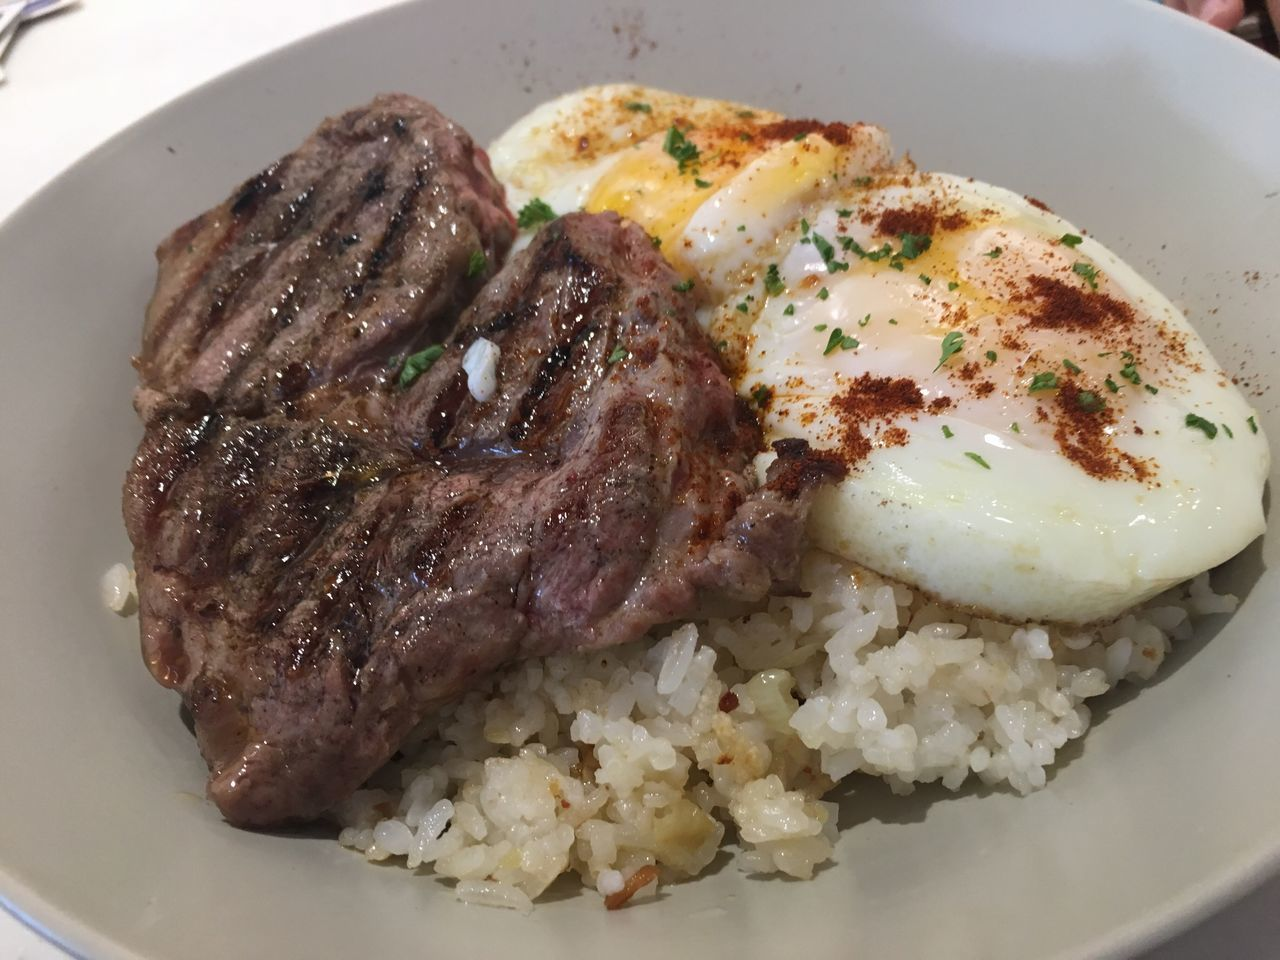 Steak and rice Food And Drink Food Steaks Steak Dinner Steak And Rice